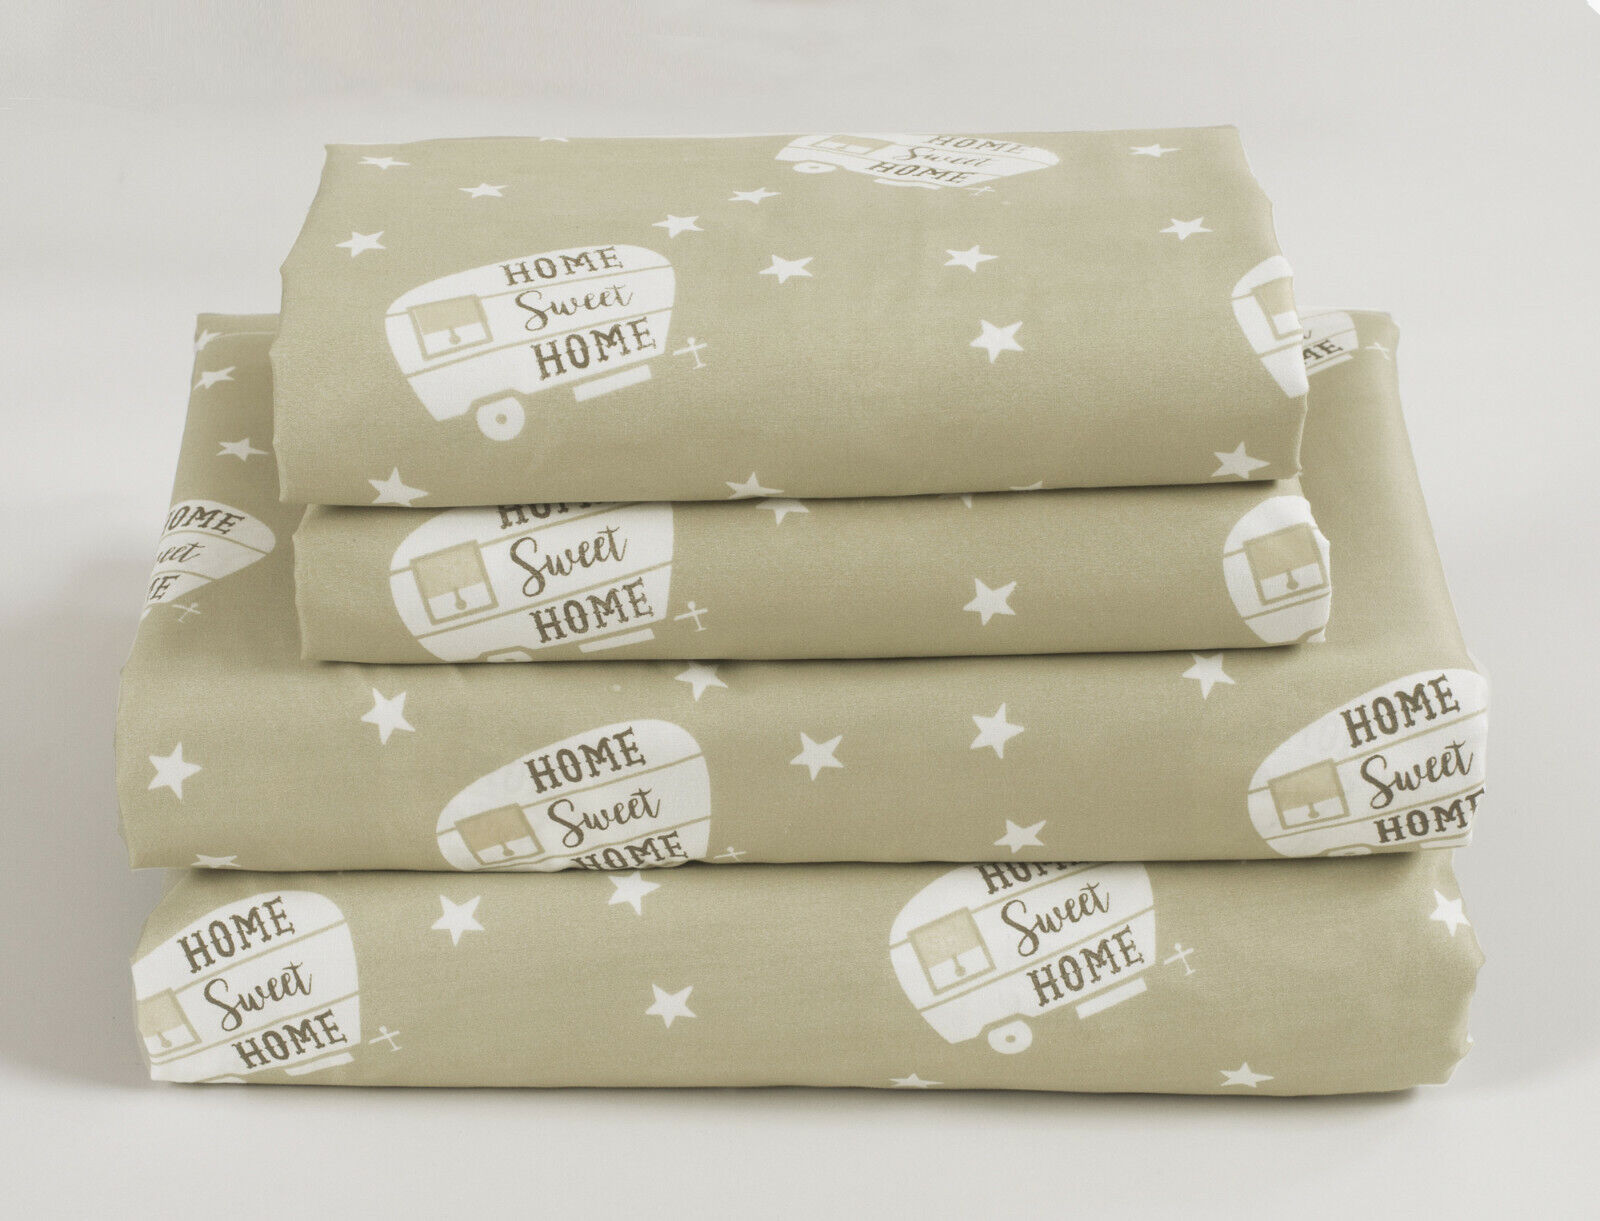 Twin, Full, Queen or King RV Camping Sheet Set Motorhome Bedding, Tan and White Bedding